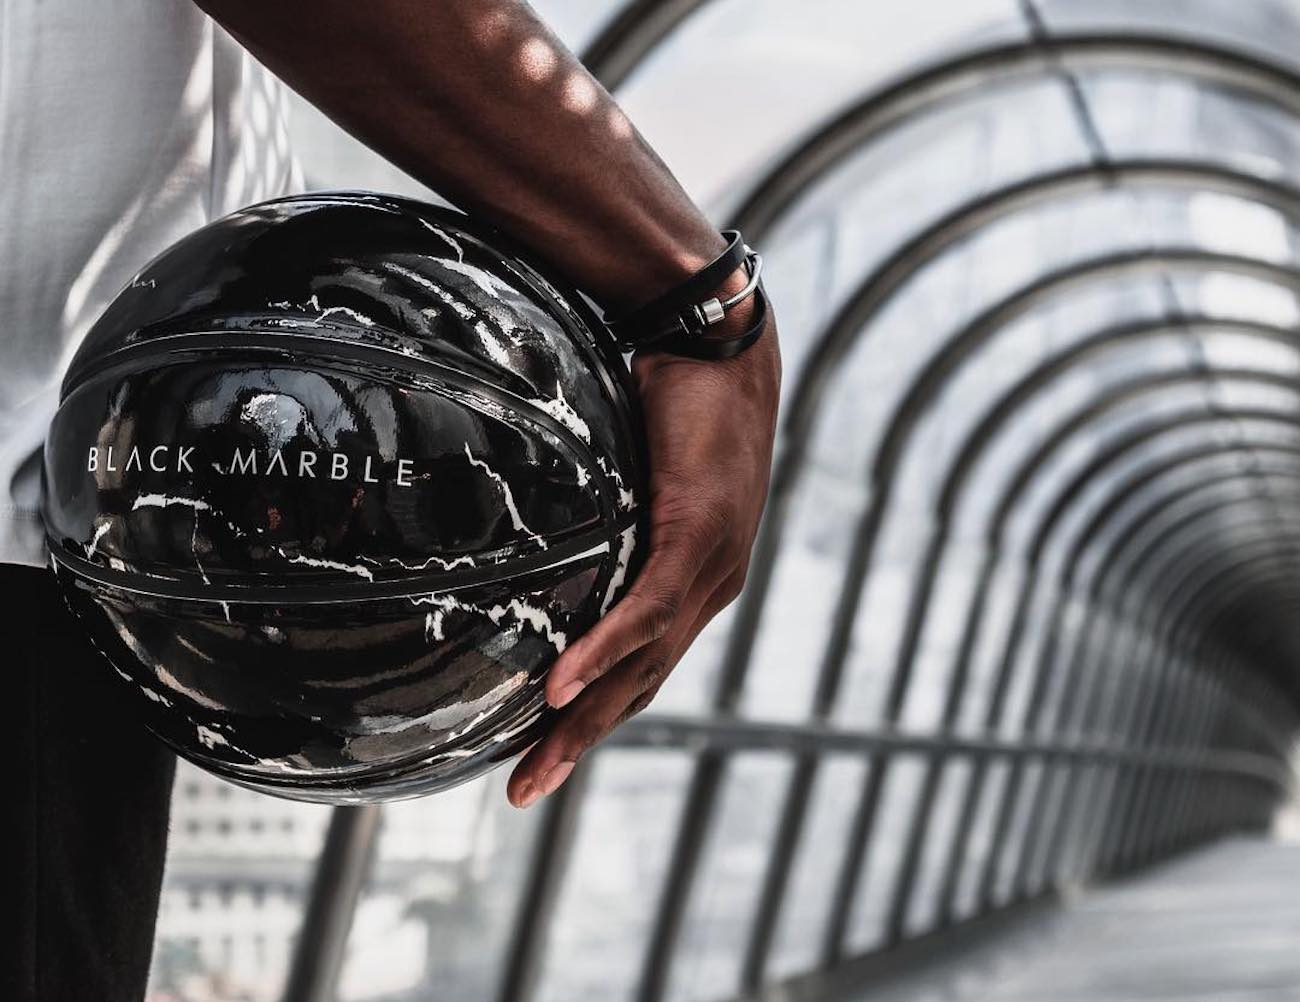 Sphere Paris Stylish Premium Basketballs